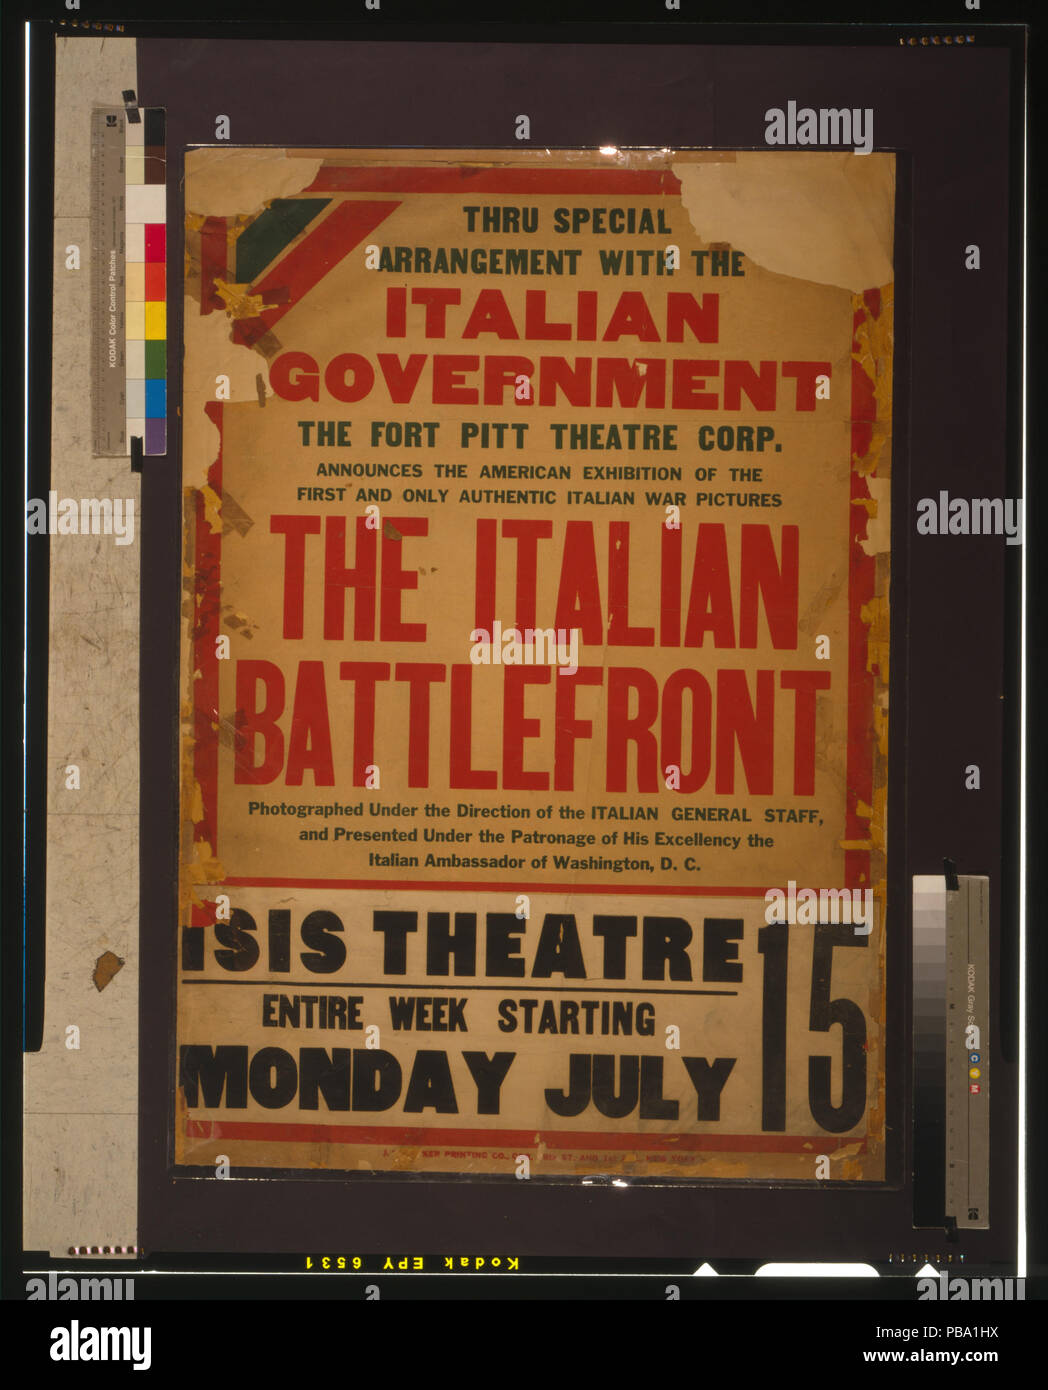 1745 Thru special arrangement with the Italian government (...) the Italian battlefront LCCN00652397 - Stock Image